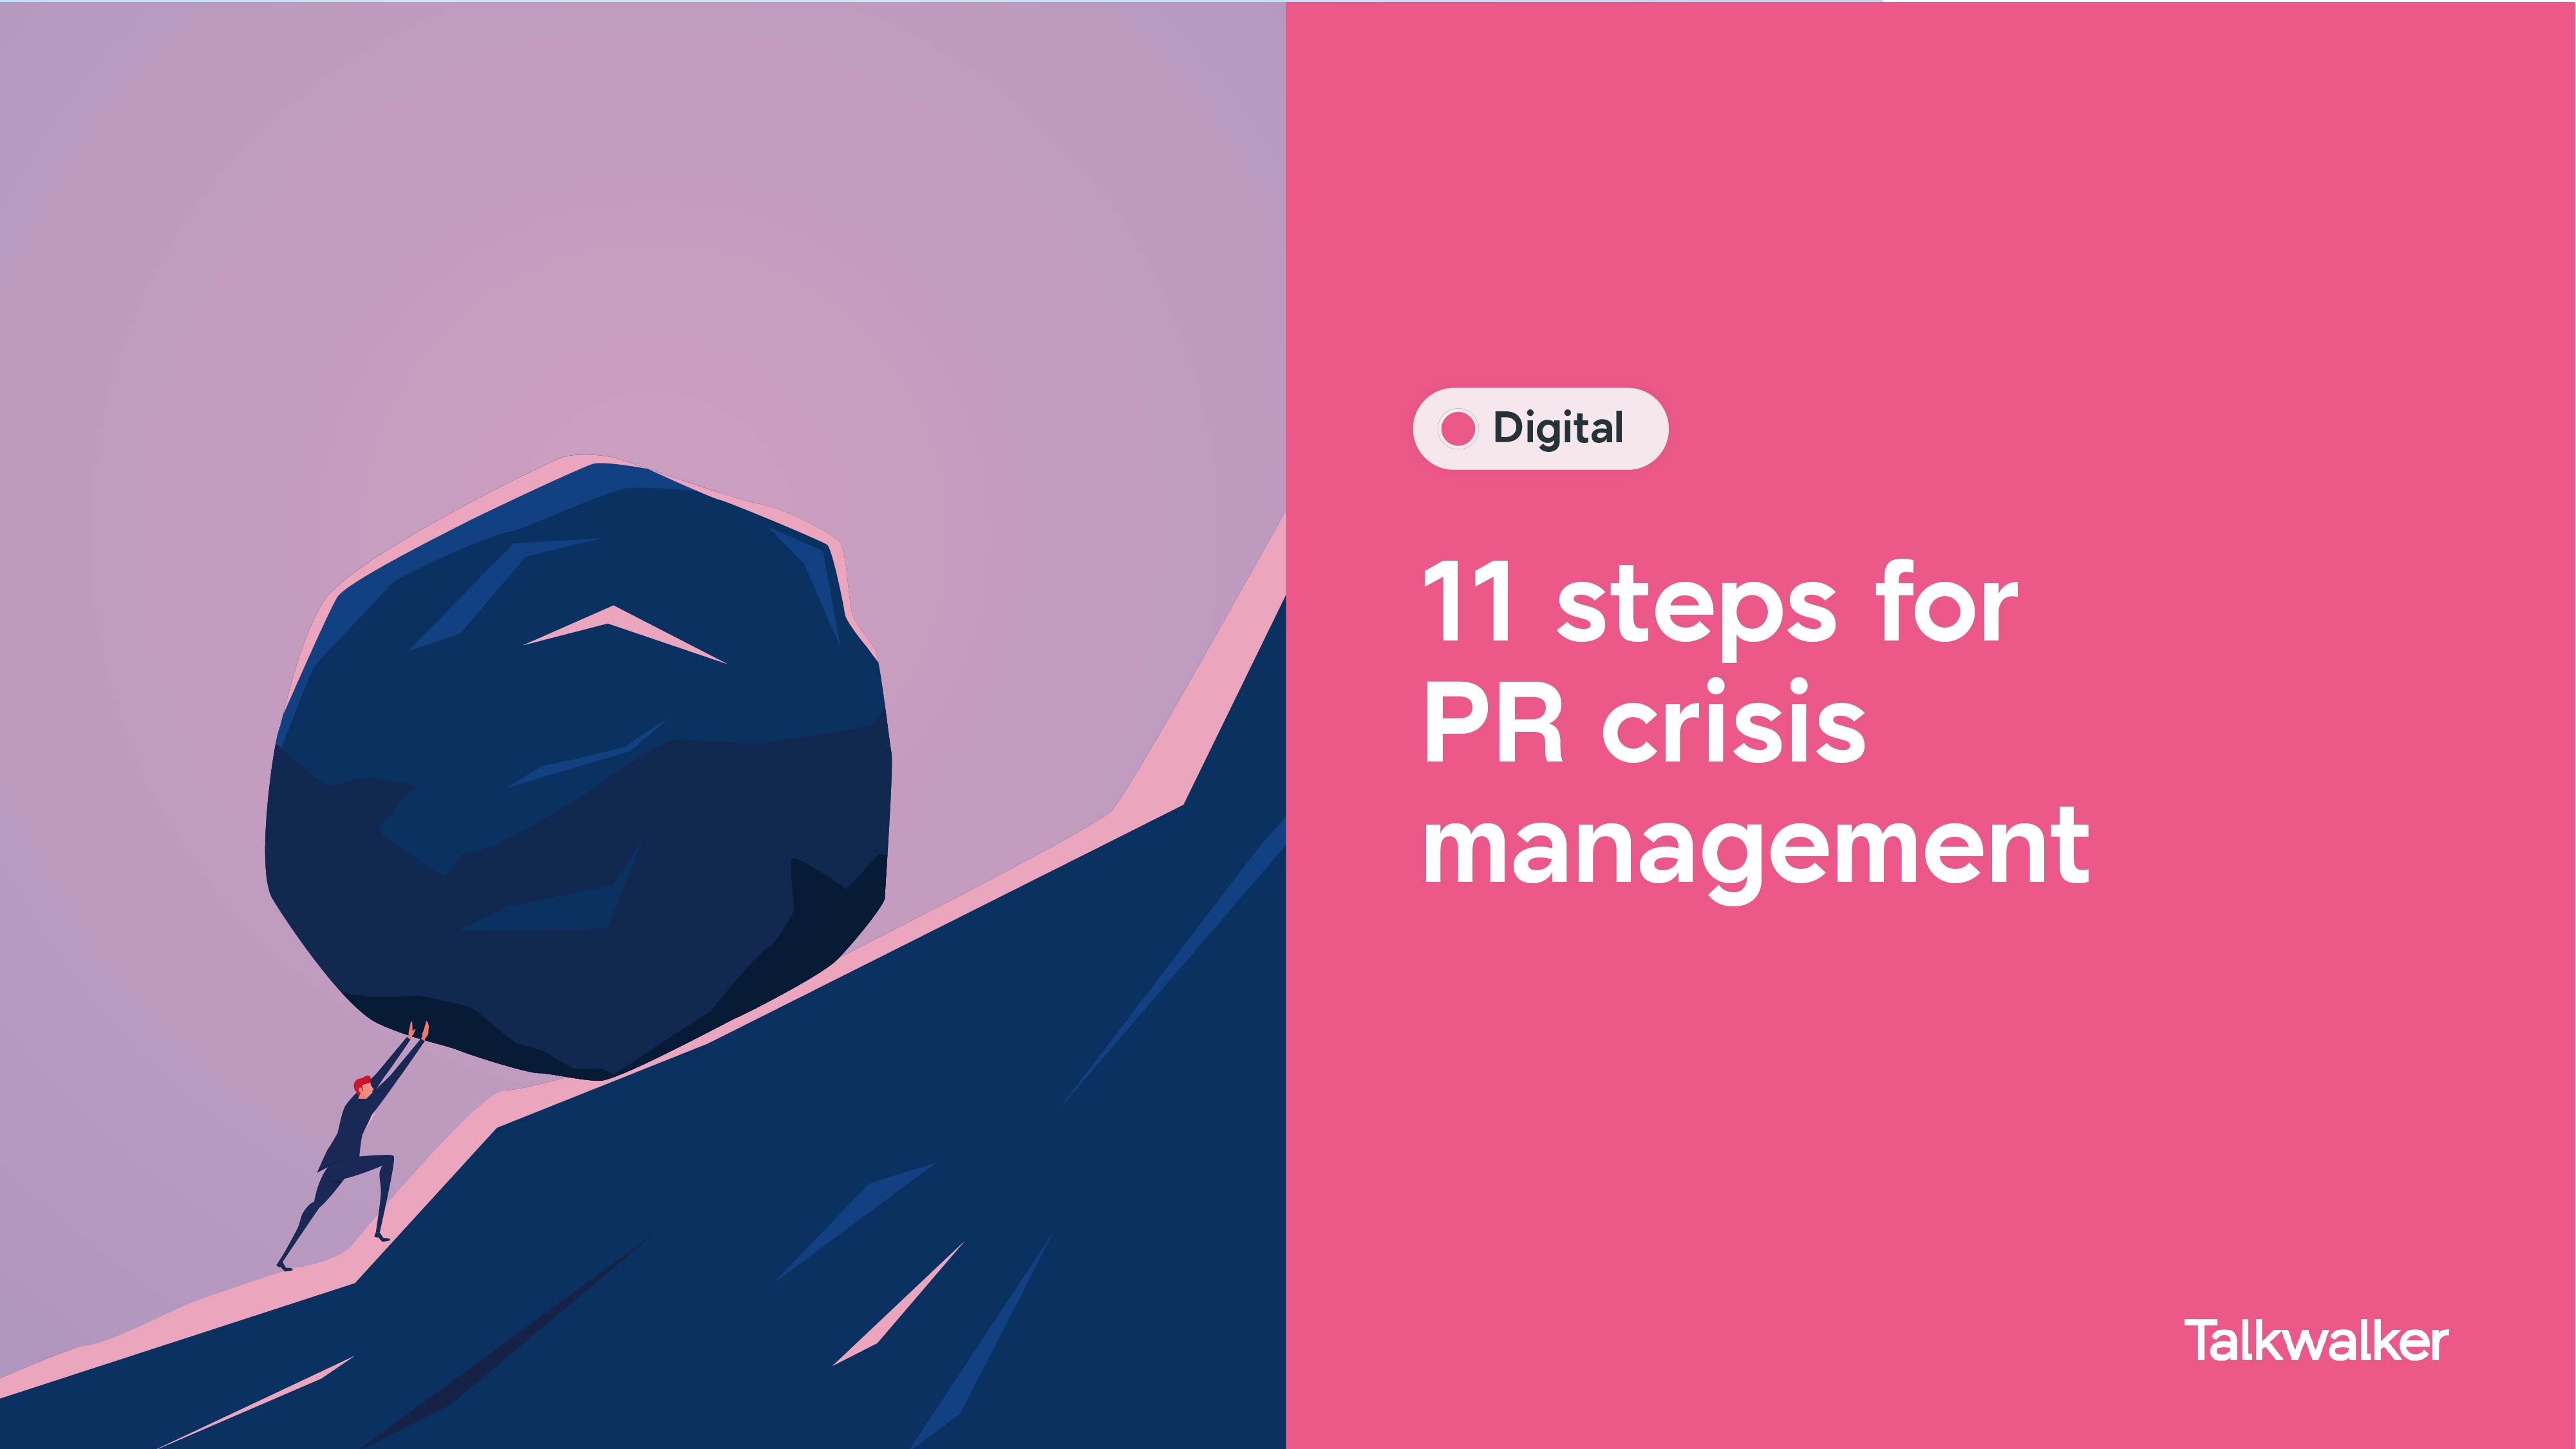 11 steps for PR crisis management - image shows a person pushing a boulder up a steep hil.